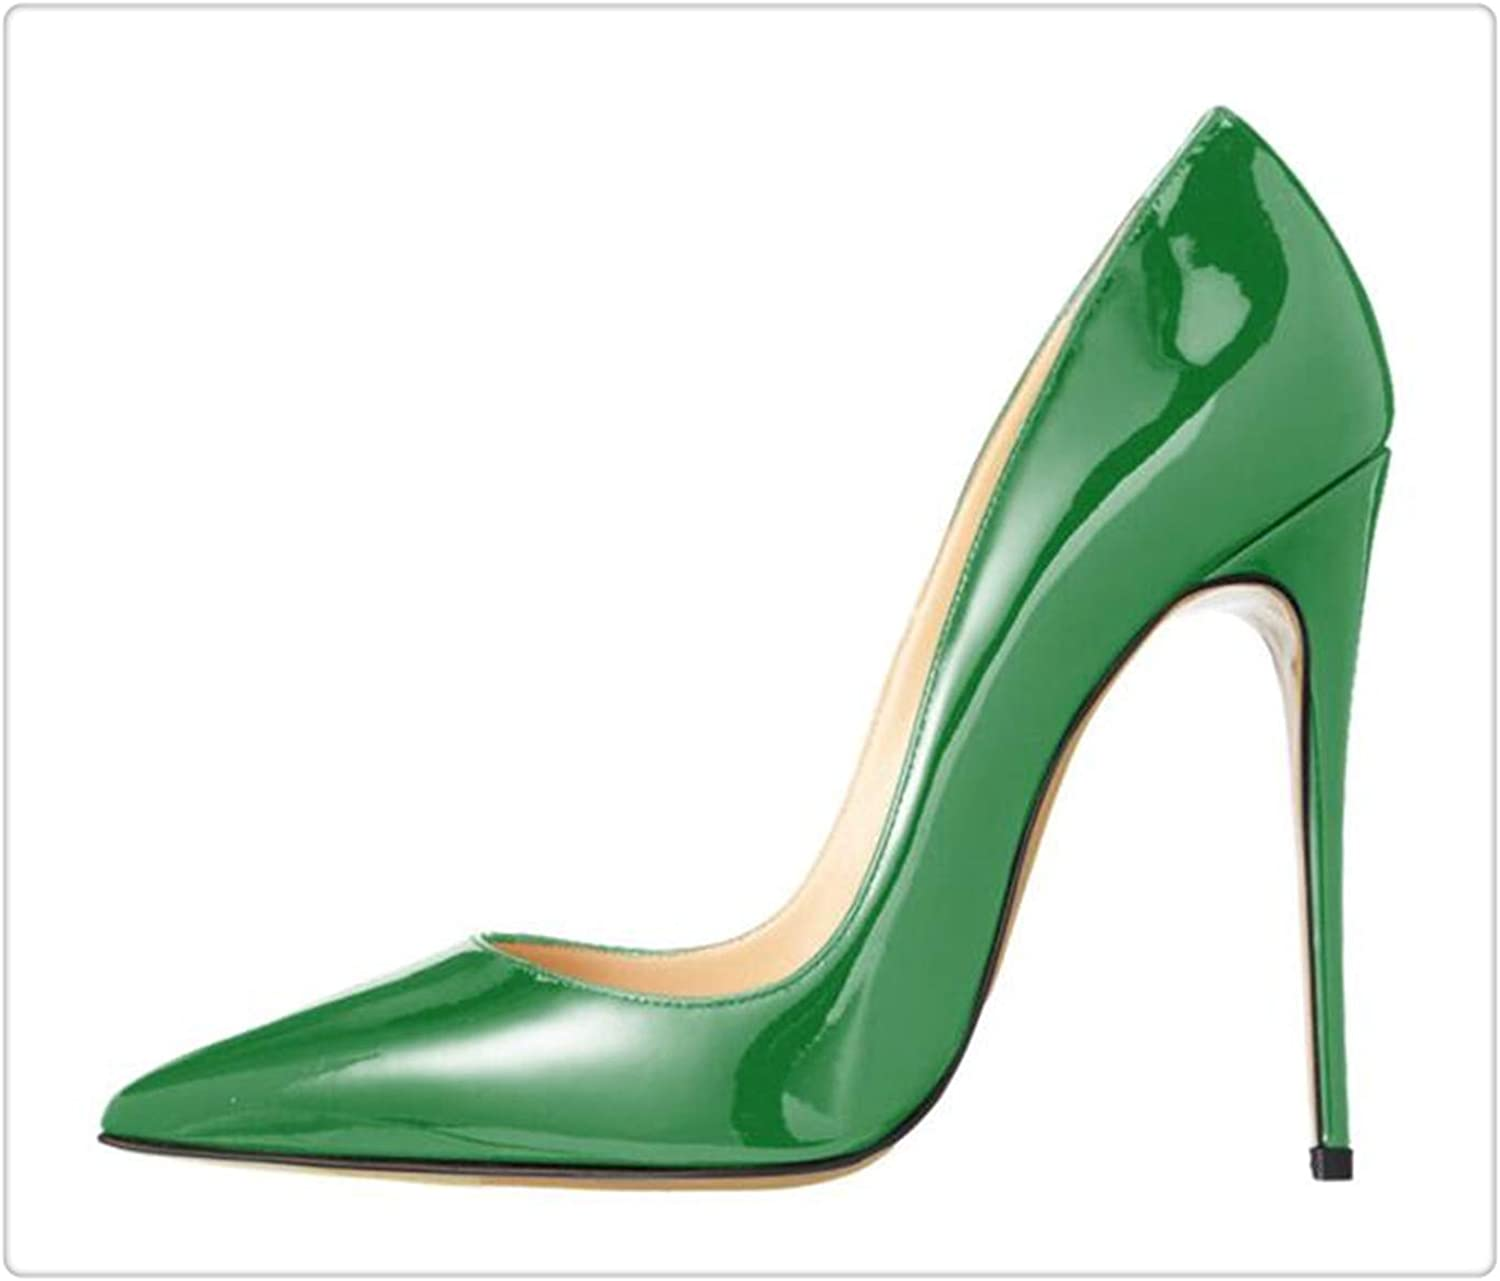 ZXCVB& 2018 shoes Woman High Heels Wedding shoes Black Nude Women Pumps Pointed Toe Sexy High Heels shoes Stilettos Party shoes Green 12